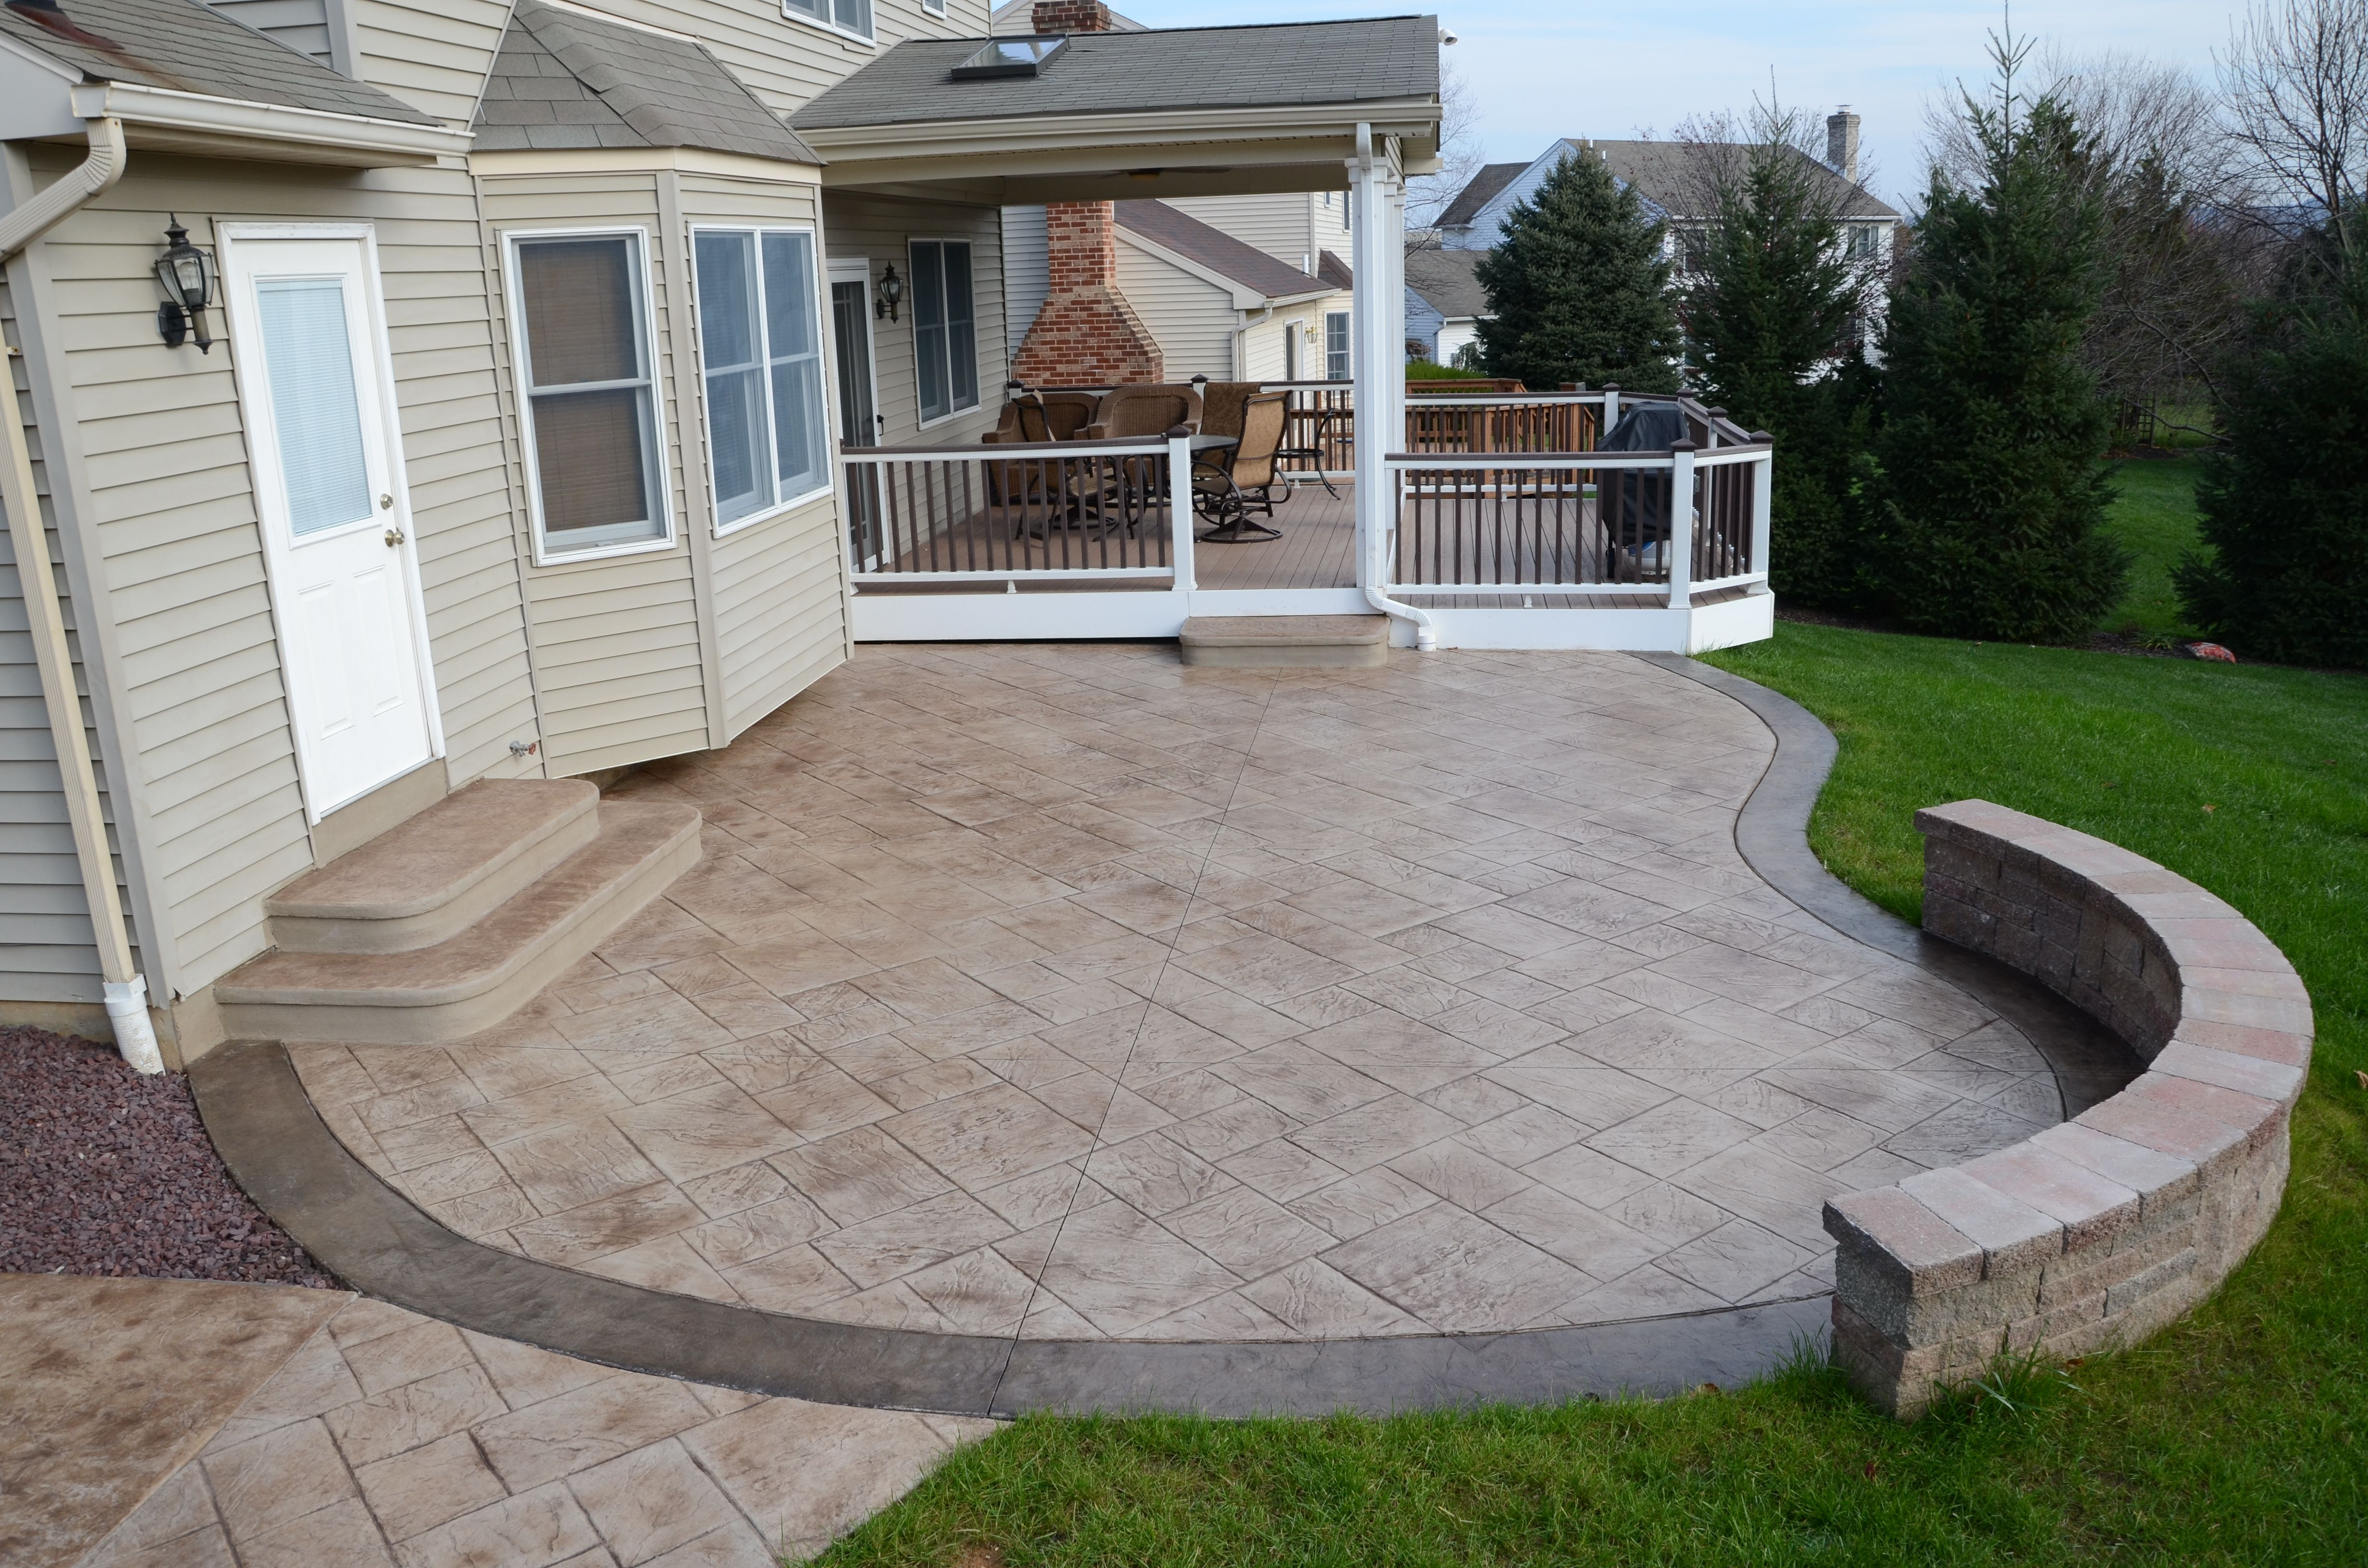 stamp concrete patios  Stamped Concrete Patio add bench around fire pit  Landscape in 2019